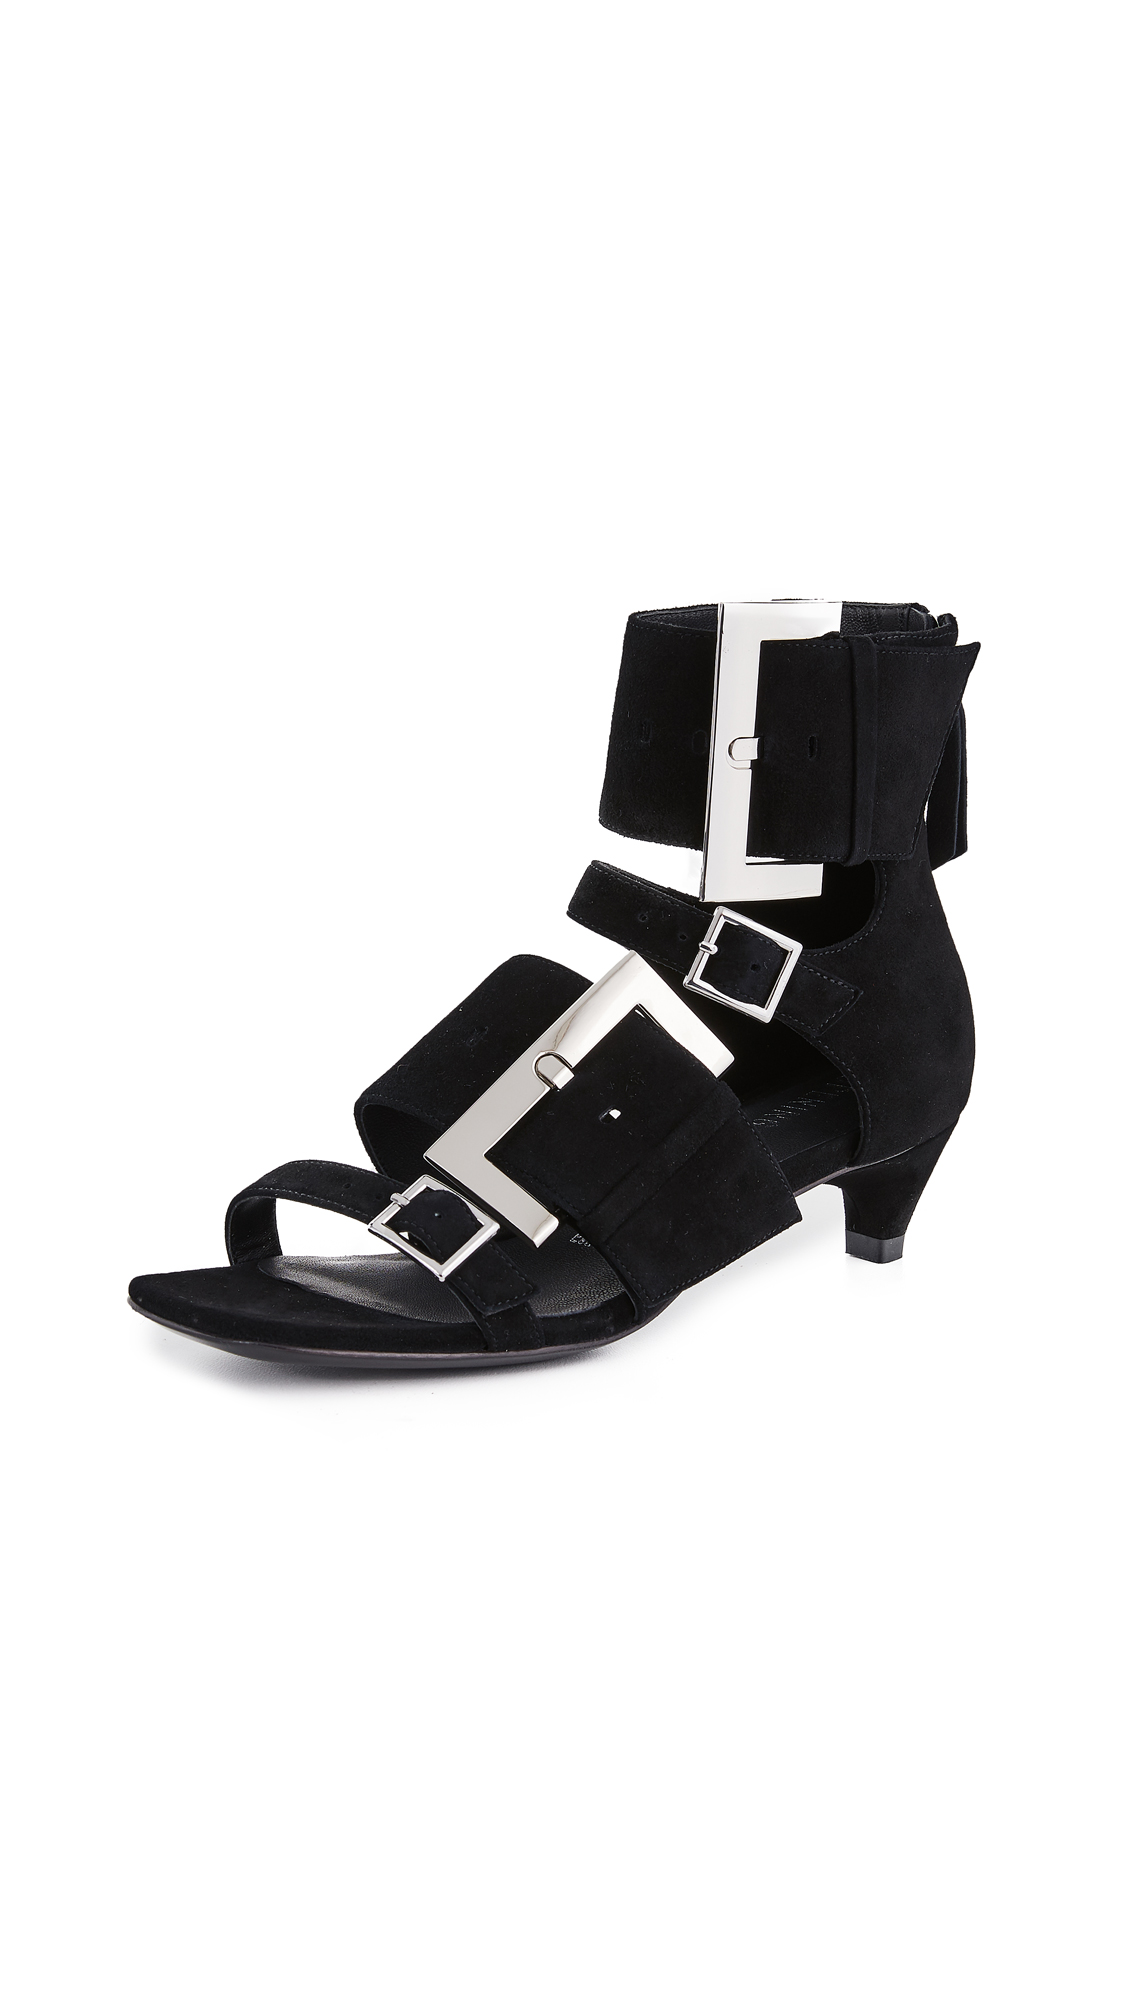 Opening Ceremony Ozzy Buckle Sandals - Black